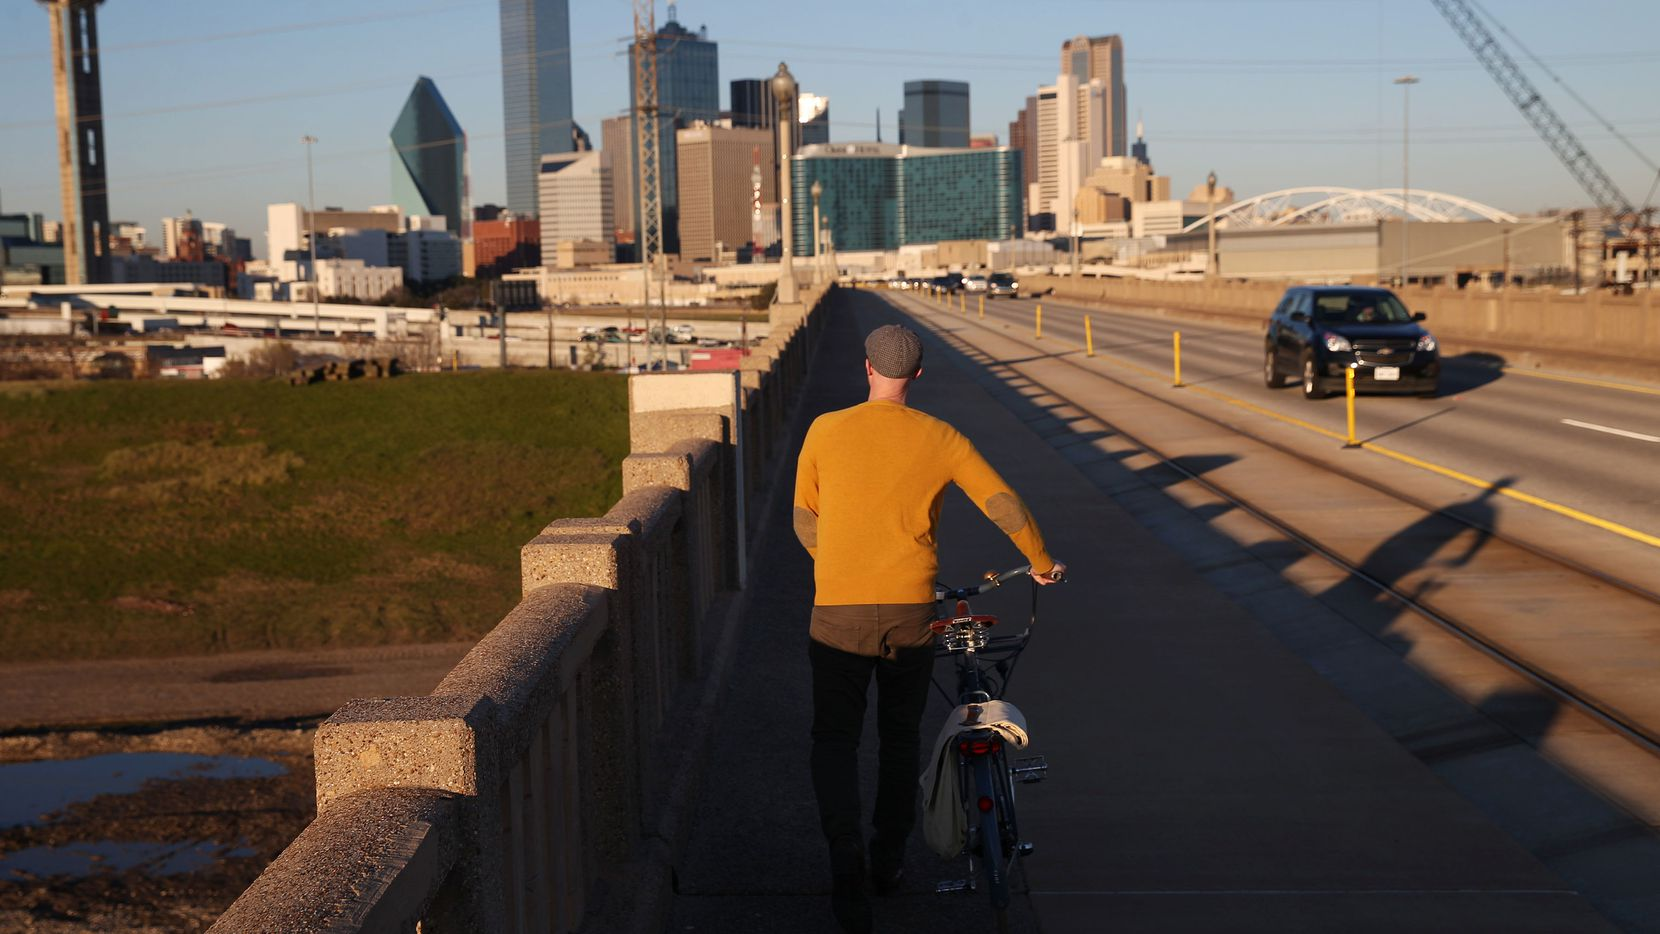 Jason Roberts, co-founder of Bike Friendly Oak Cliff, walked across the Houston Street bridge at rush hour in this 2016 file photo. The nonprofit is giving away free children's bikes this weekend.